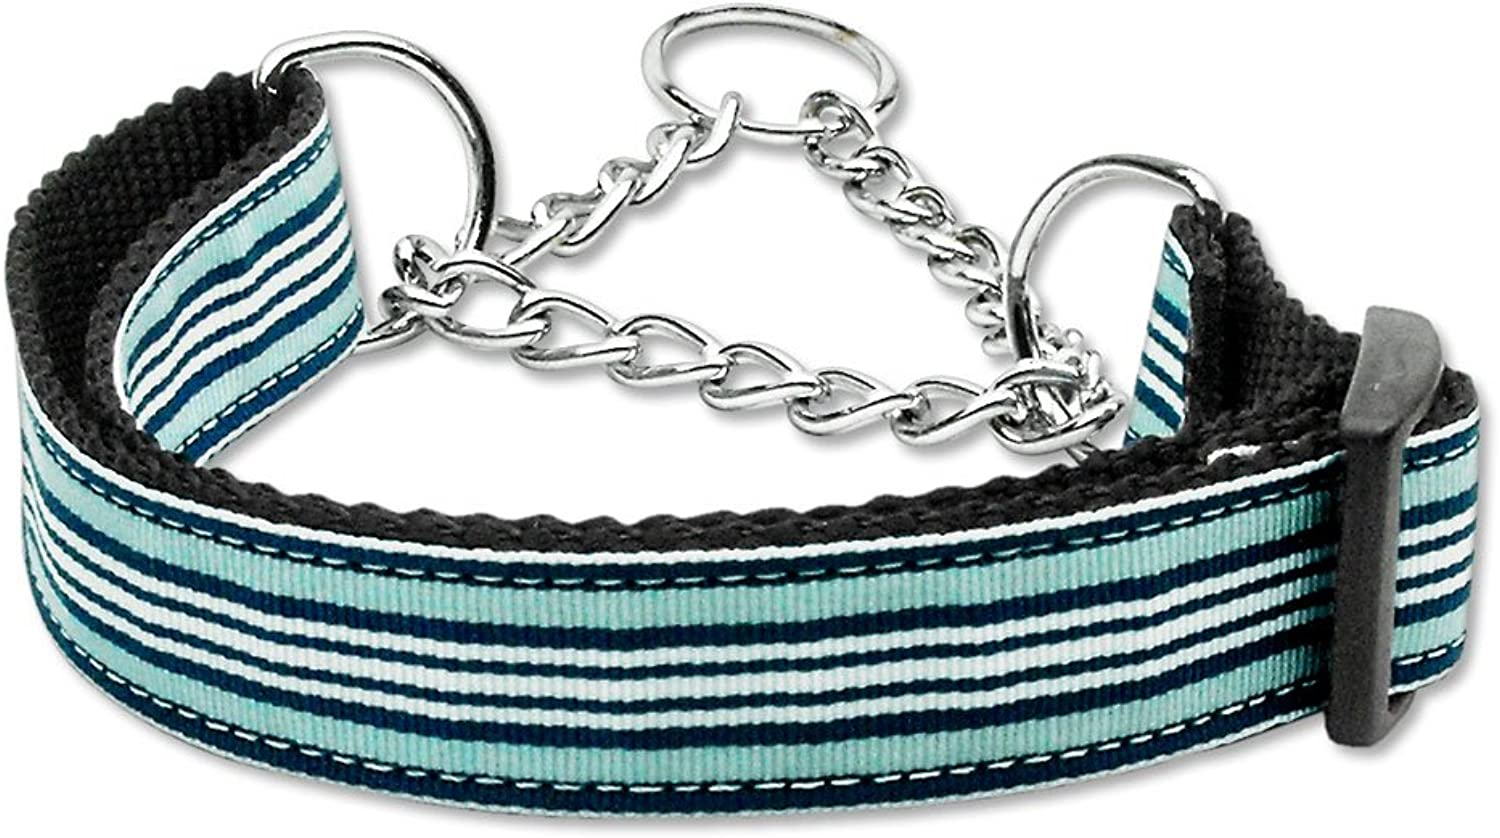 Mirage Pet Products Martingale Preppy Stripes Nylon Ribbon Collars, Large, Light bluee White